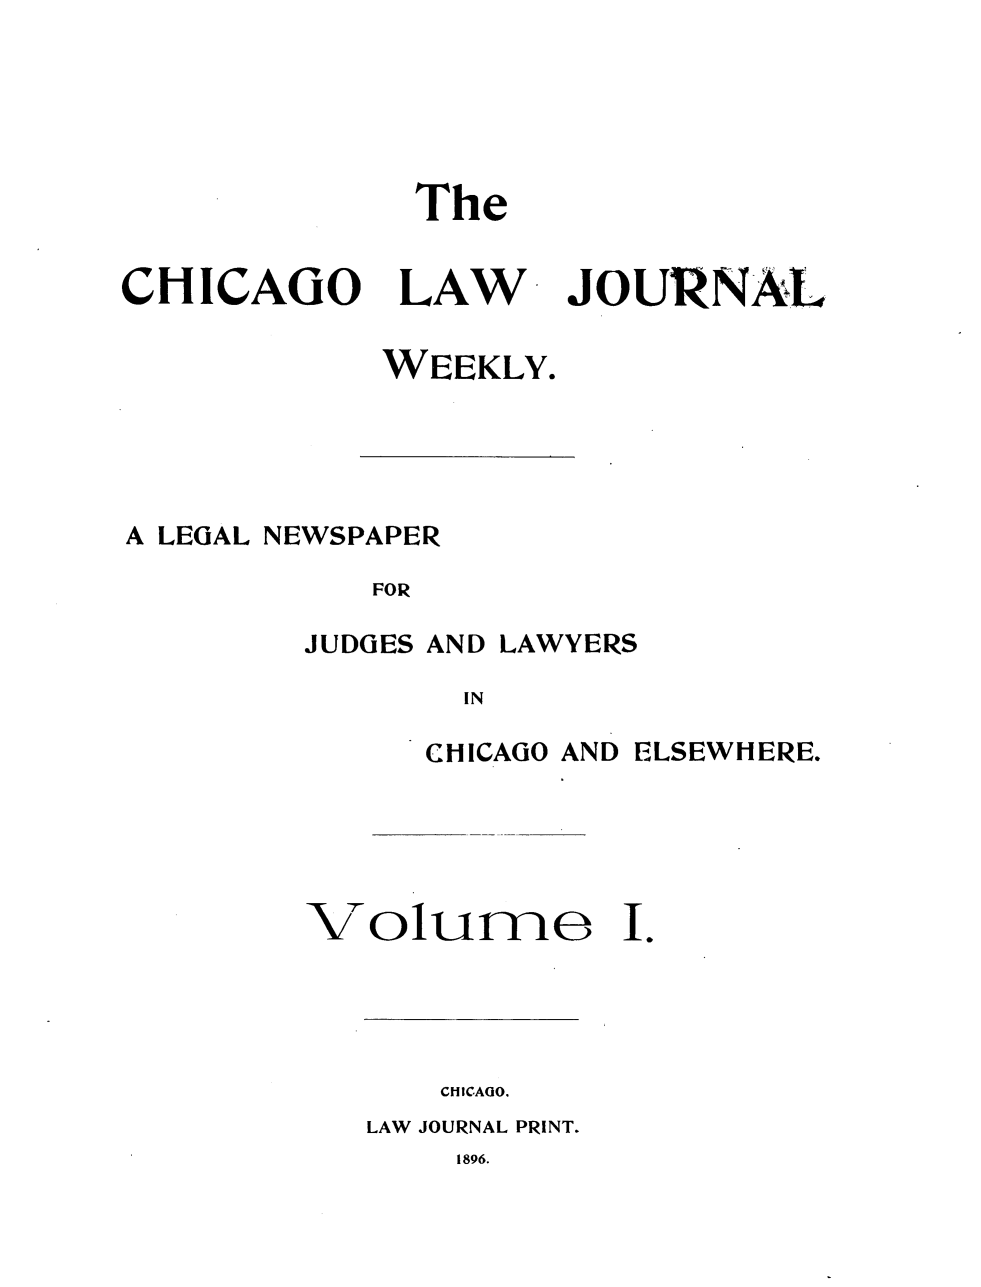 handle is hein.journals/chcgolwjrnl1 and id is 1 raw text is: The